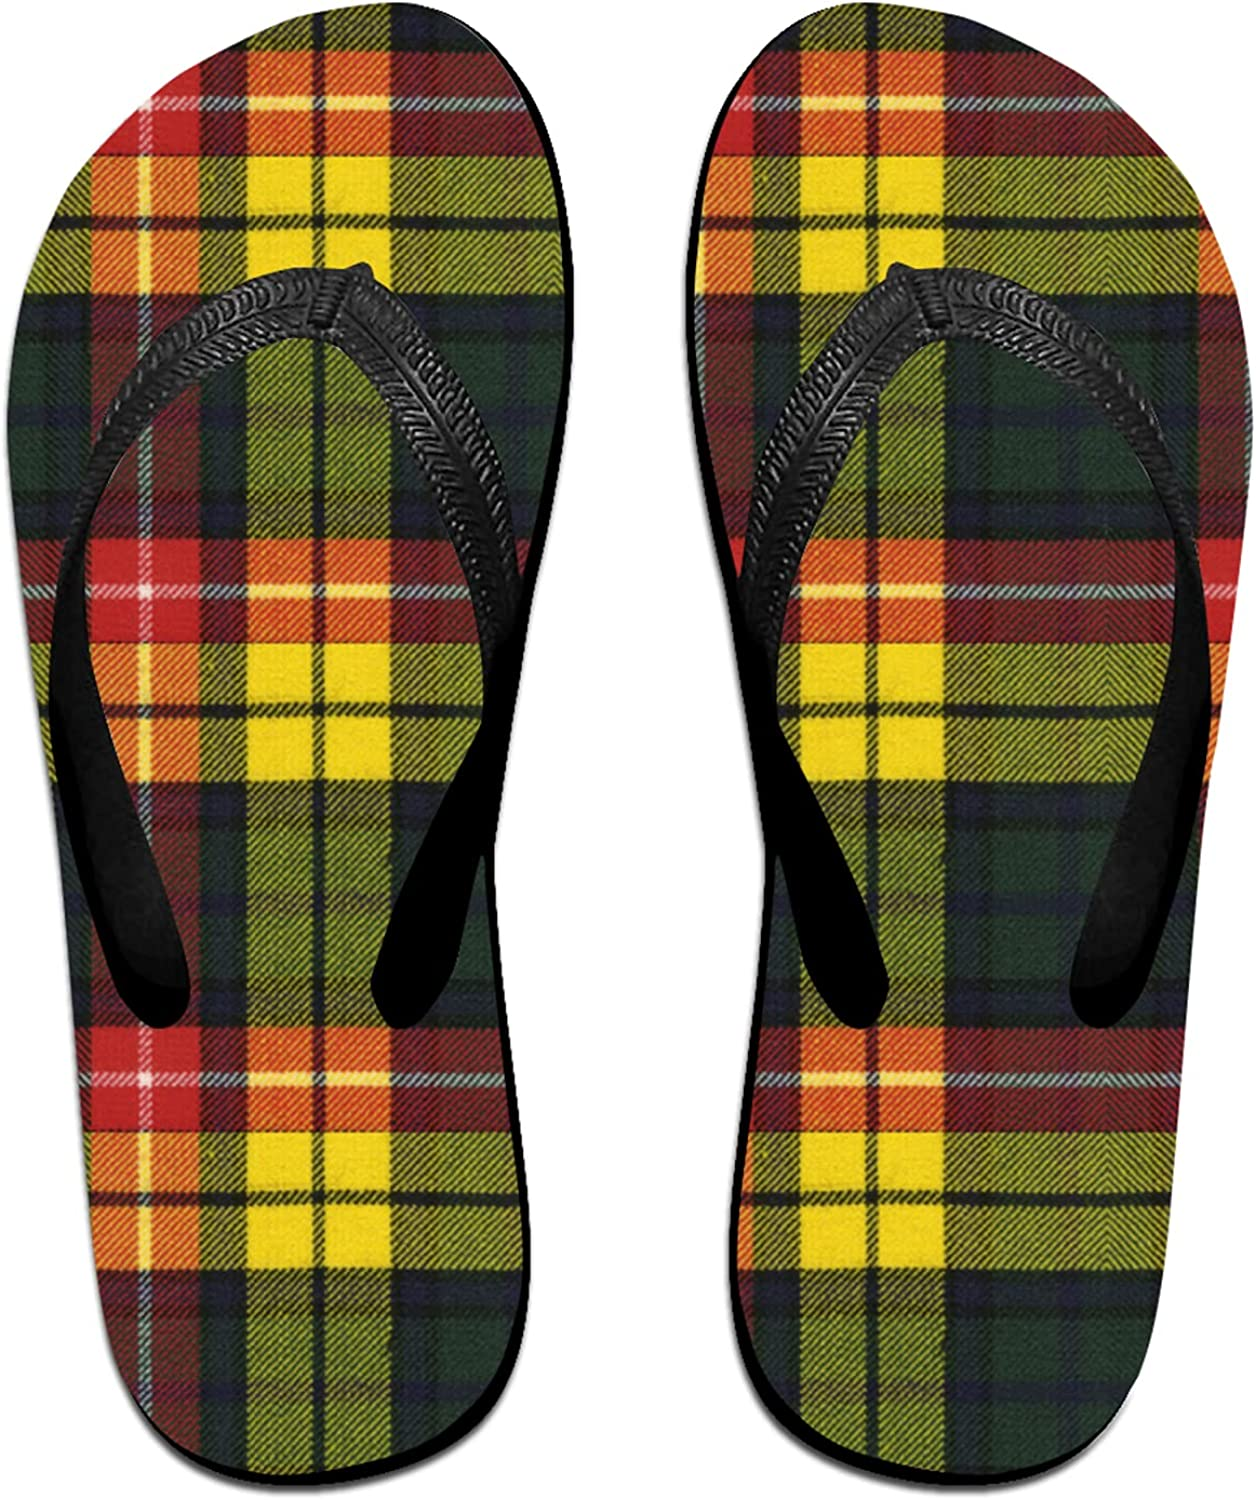 Women's Men's Flip Flop Slippers Super beauty product restock quality top! Buchanan Scot Limited time for free shipping Original Modern